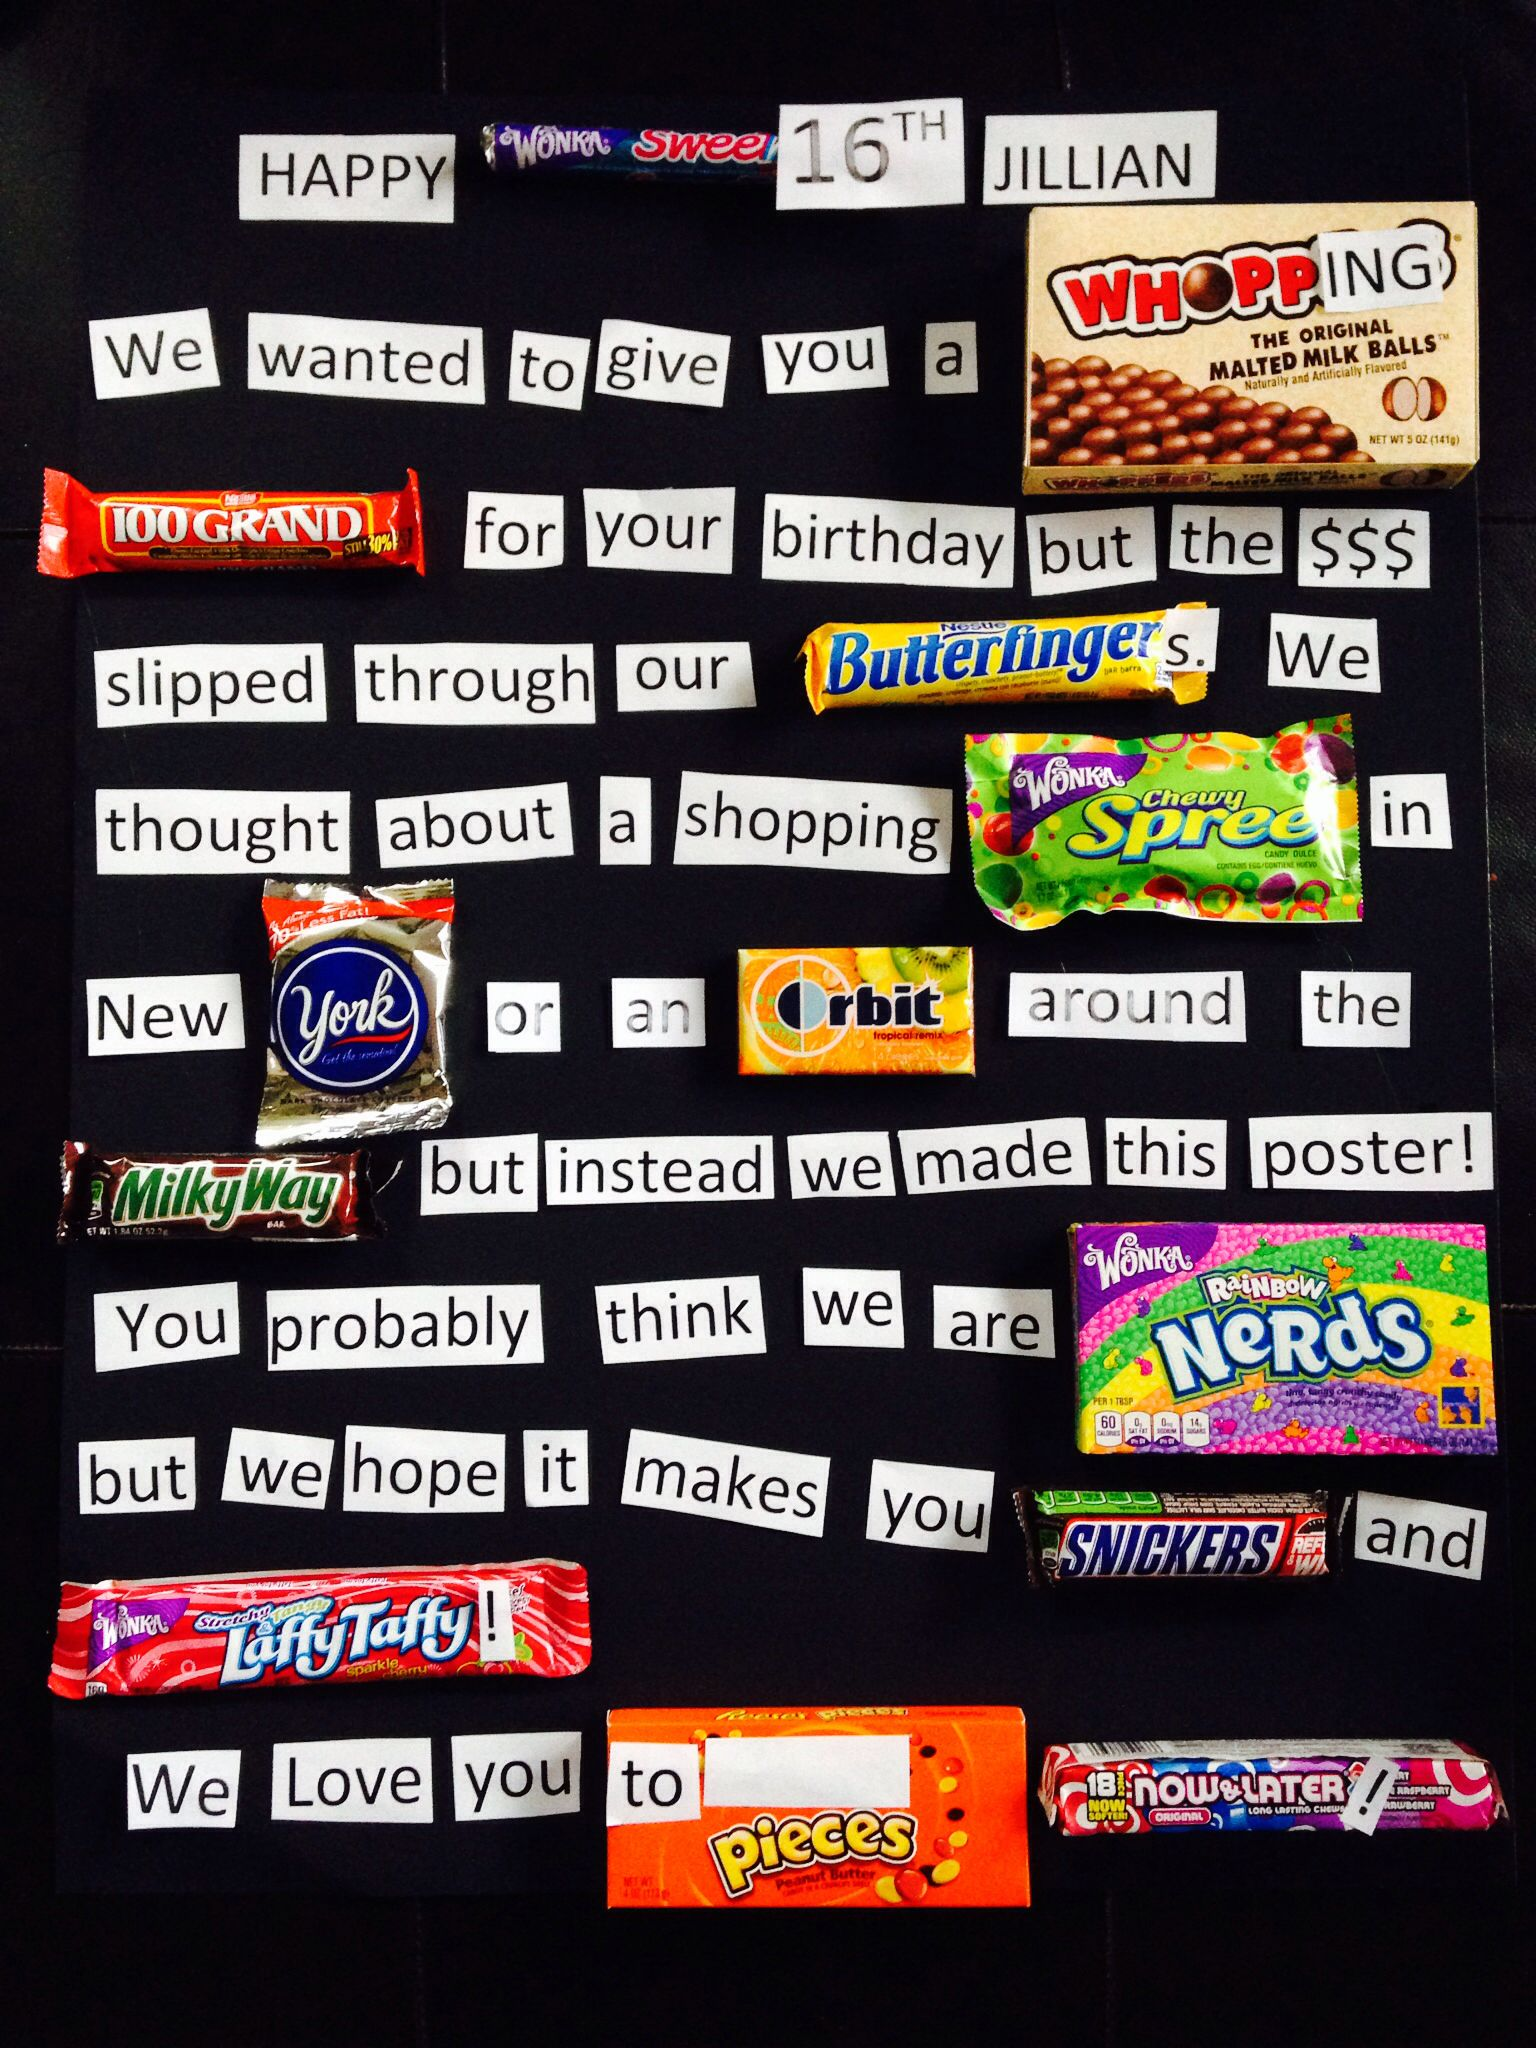 Gifts all home ideas sweet sixteen gift ideas for best friends - Sweet 16 Candy Bar Poster Made For My Jillian Birthday Presentsbirthday Cardsbirthday Ideas16th